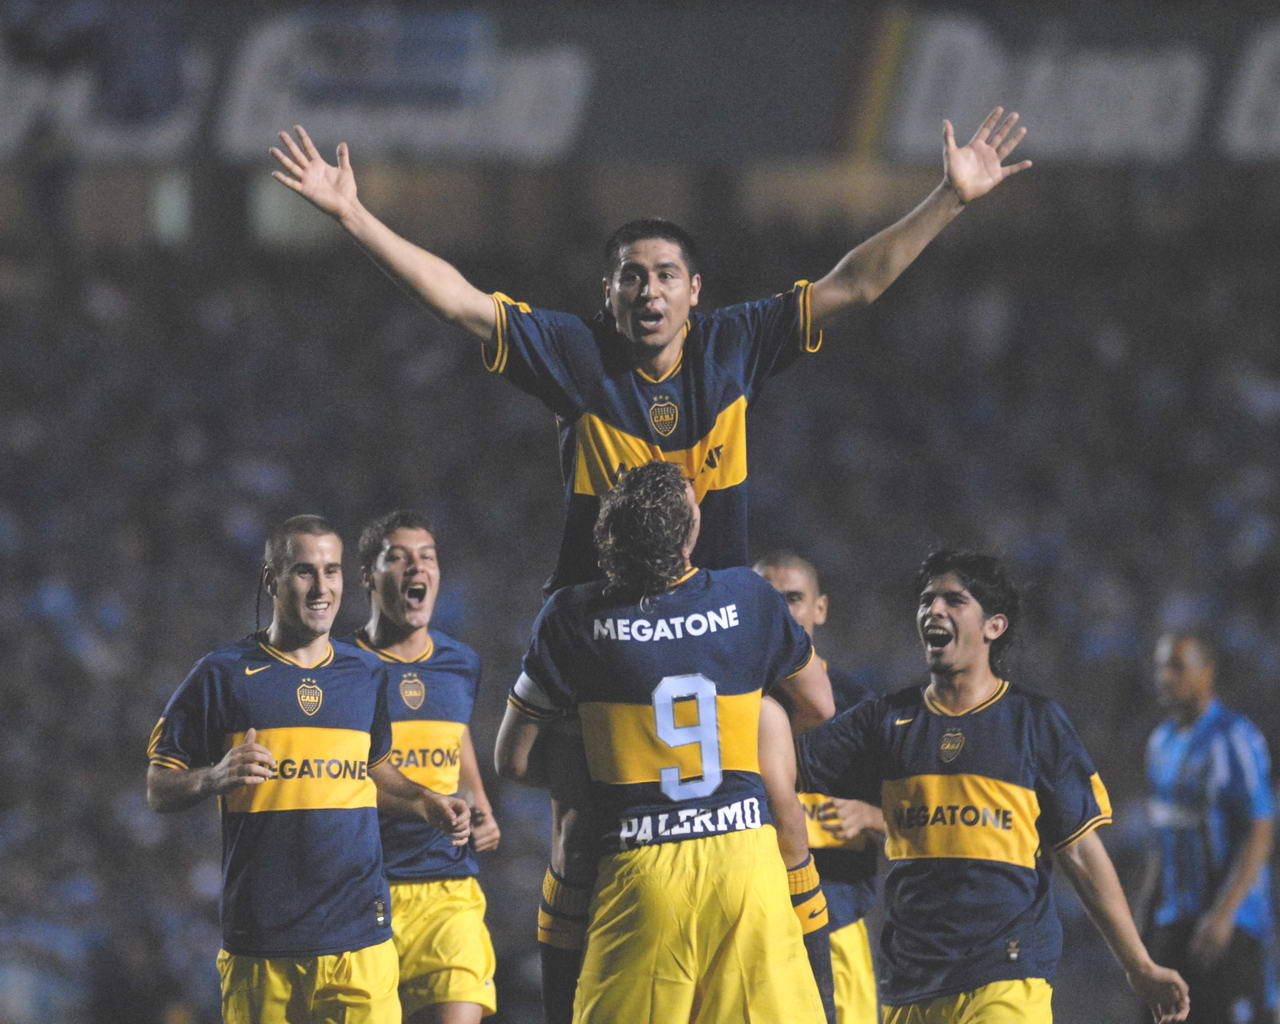 Boca Juniors: Boca Juniors Images Boca Juniors HD Wallpaper And